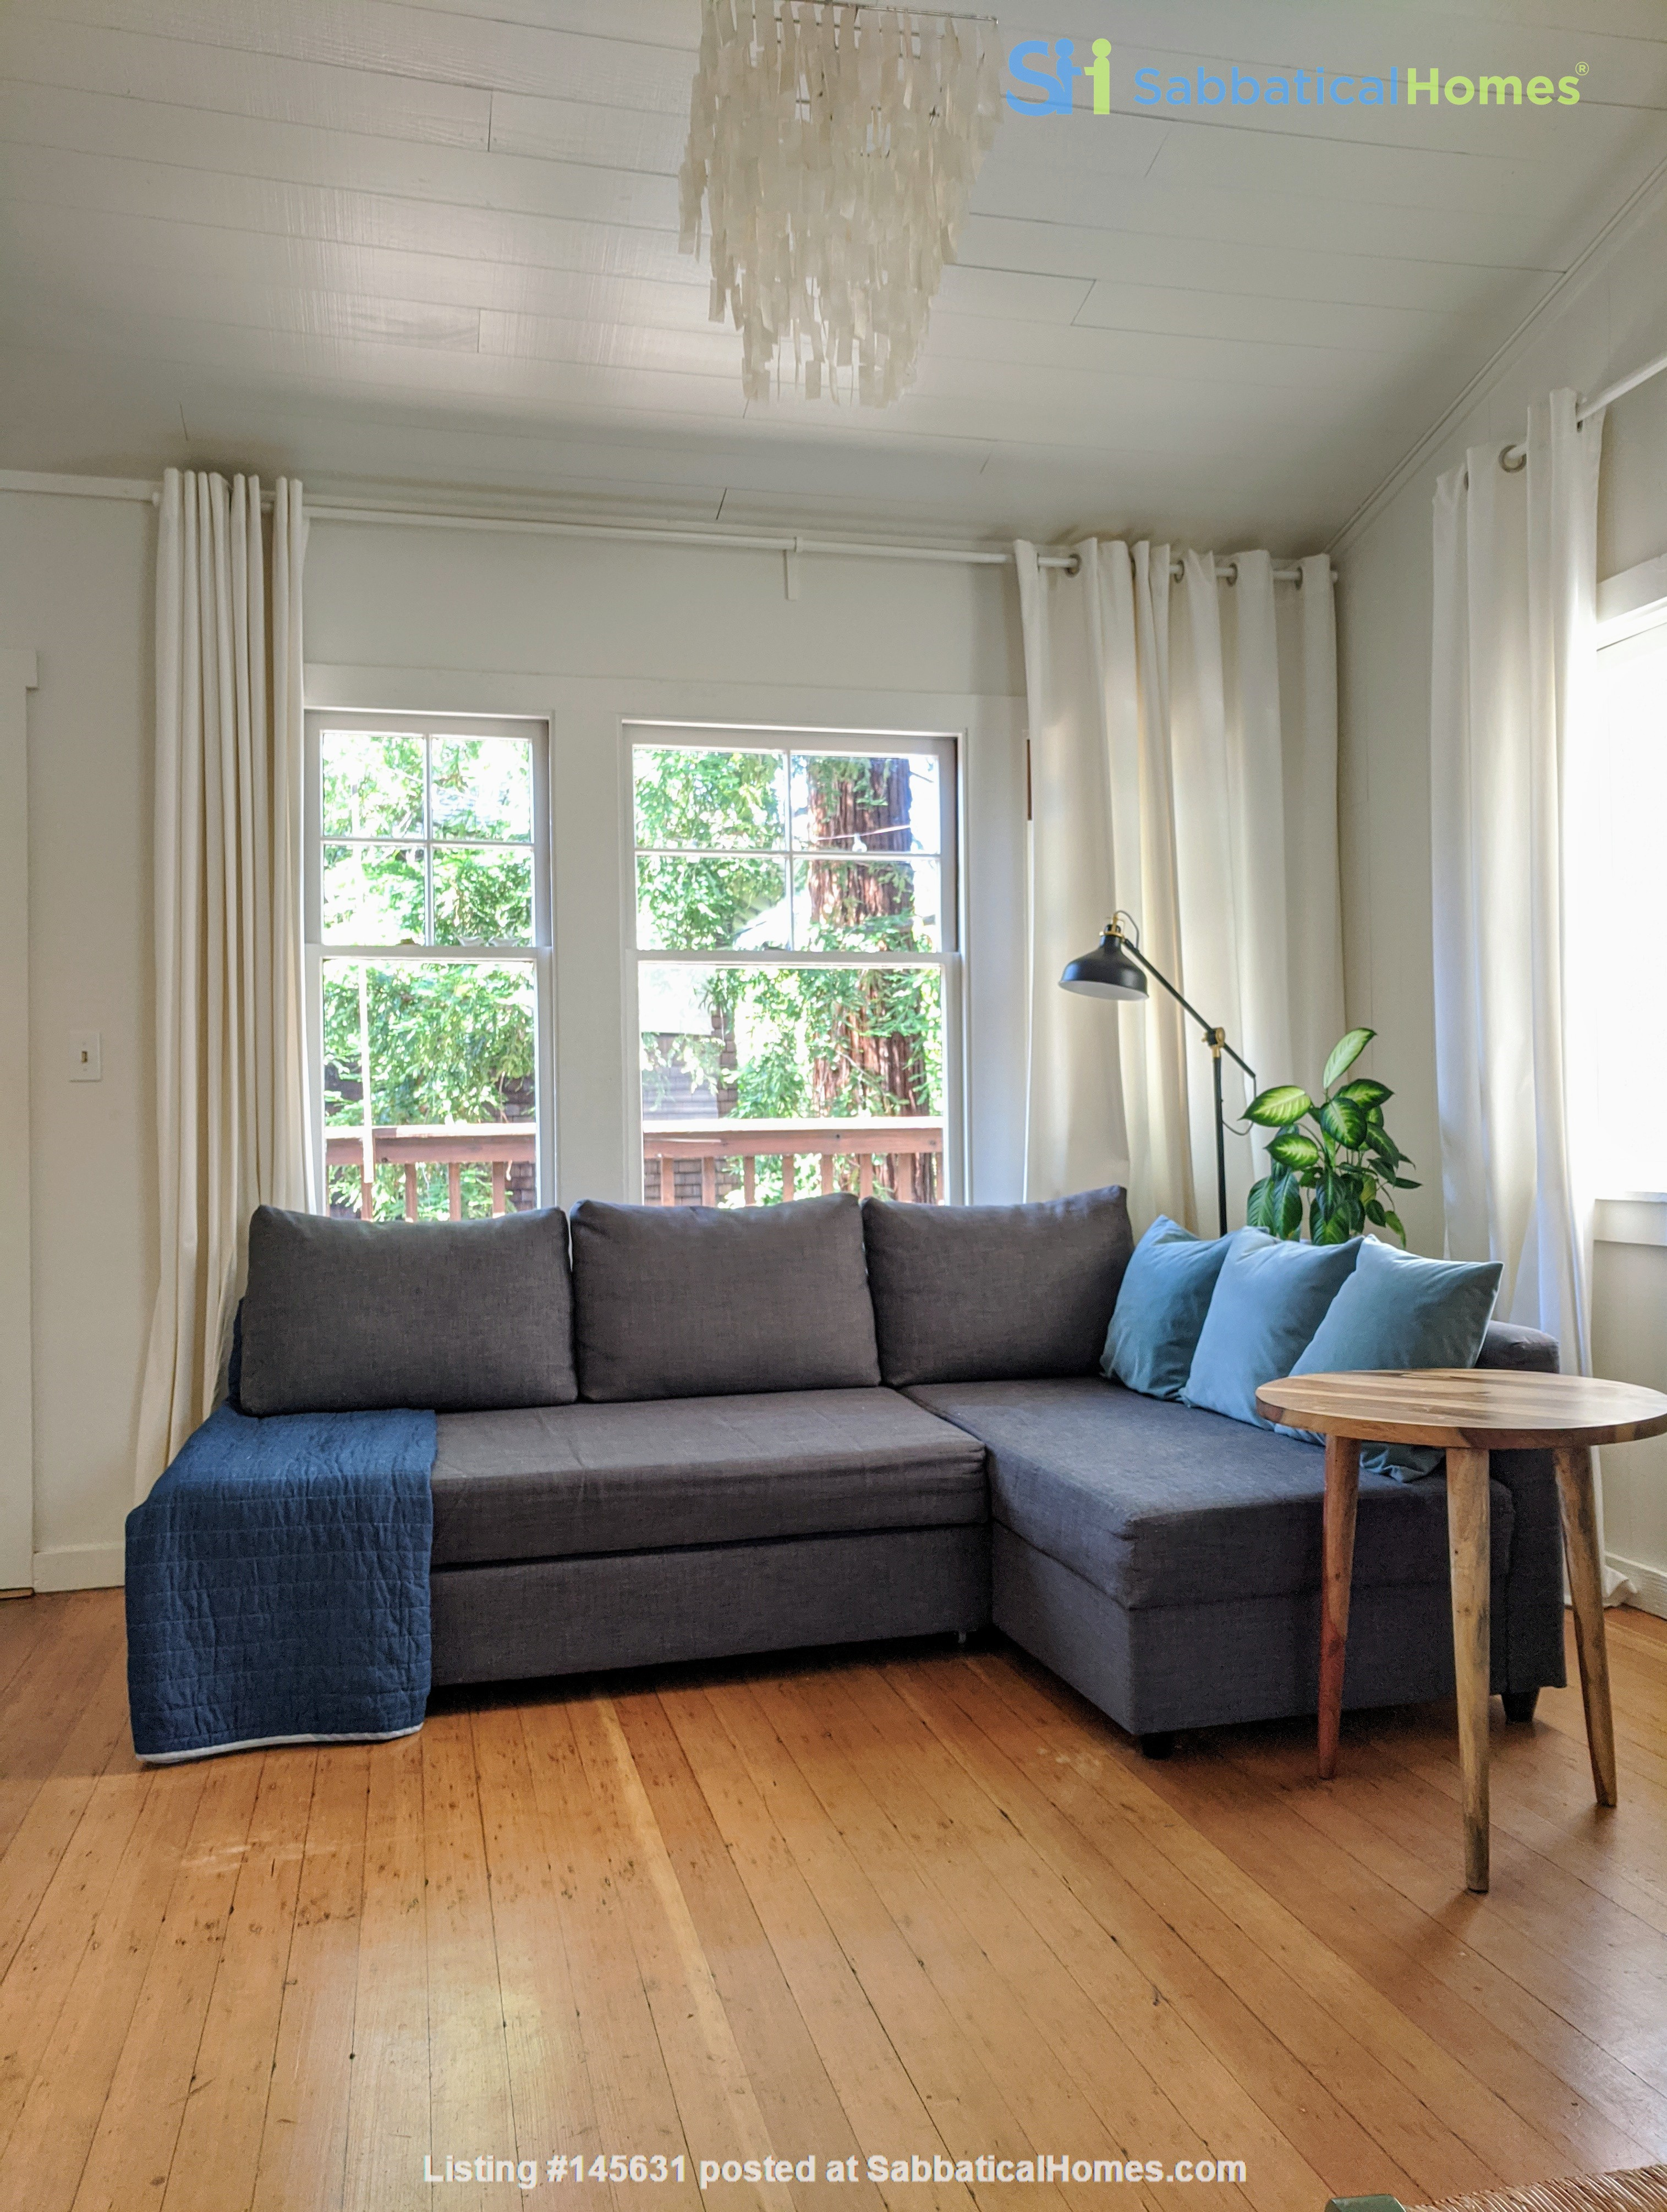 CHARMING PRIVATE COTTAGE 1 BR/1 BA + Office/studio space (720sft) Home Rental in San Rafael, California, United States 1